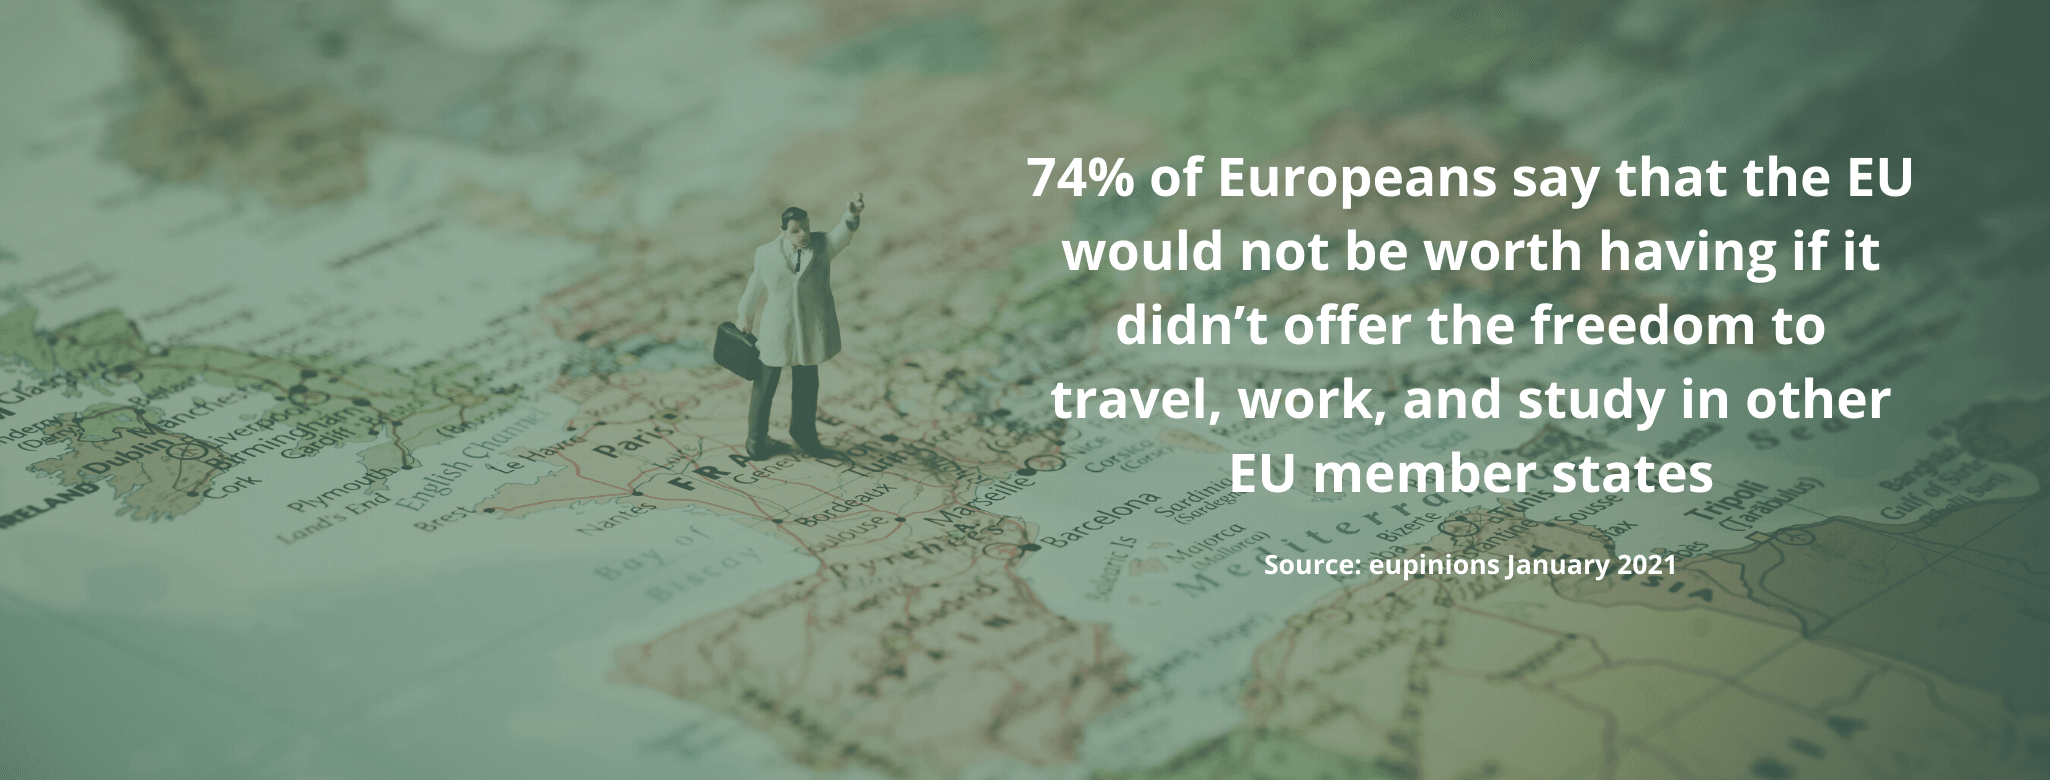 74% of Europeans say that the EU would not be worth having if it didn't offer the freedom to travel, work, and study in other EU member states - Source: eupinions January 2021